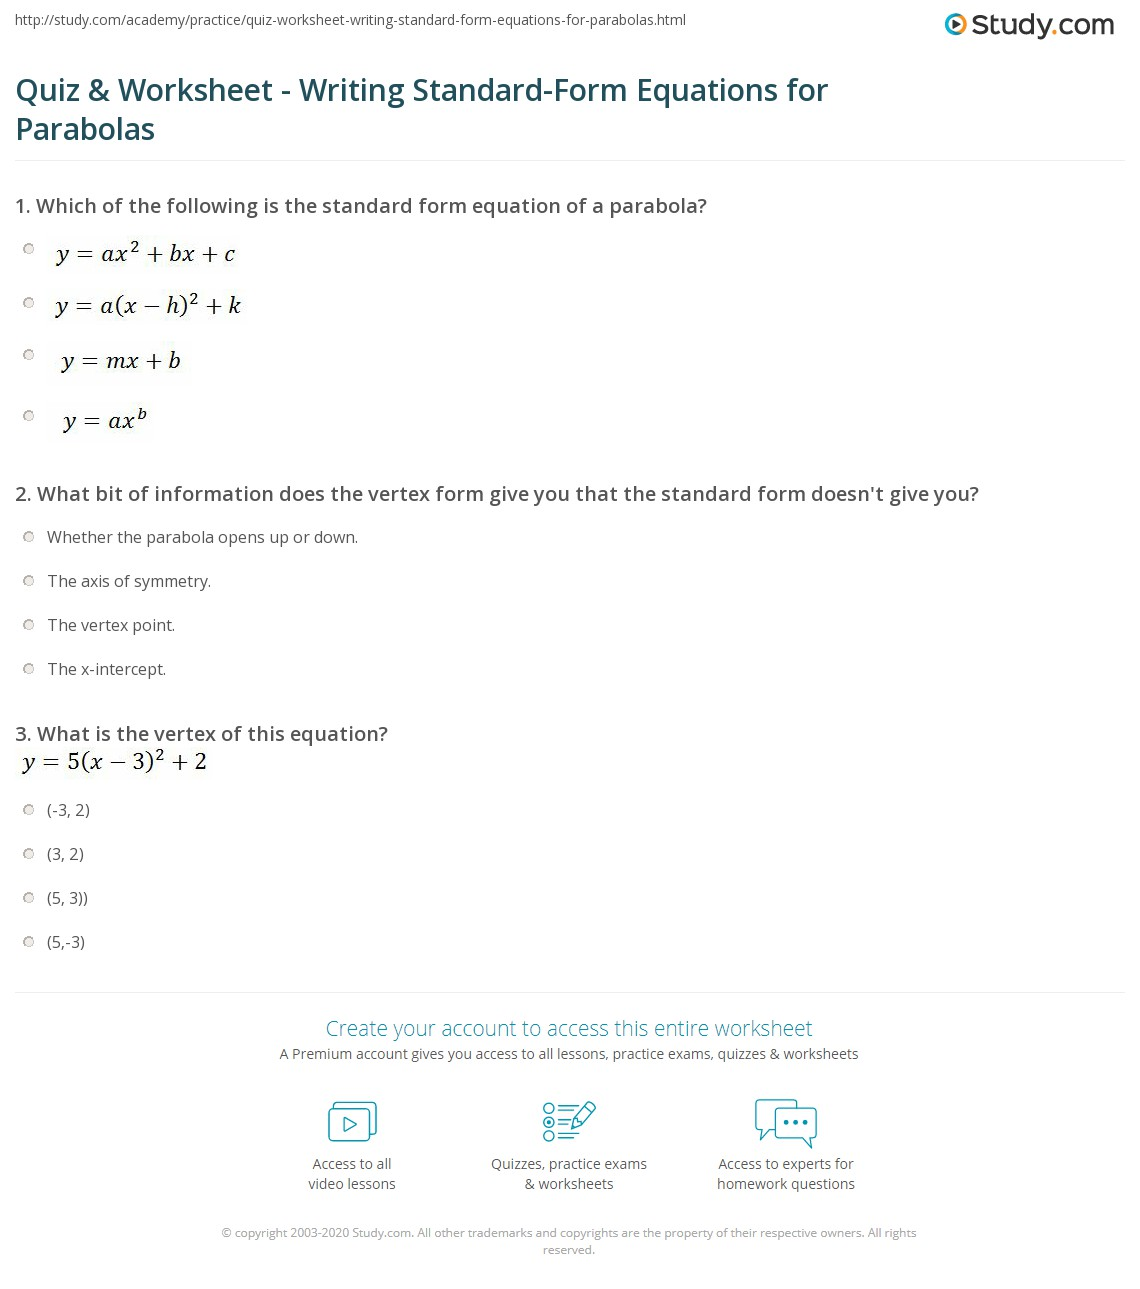 quiz worksheet writing standard form equations for parabolas. Black Bedroom Furniture Sets. Home Design Ideas